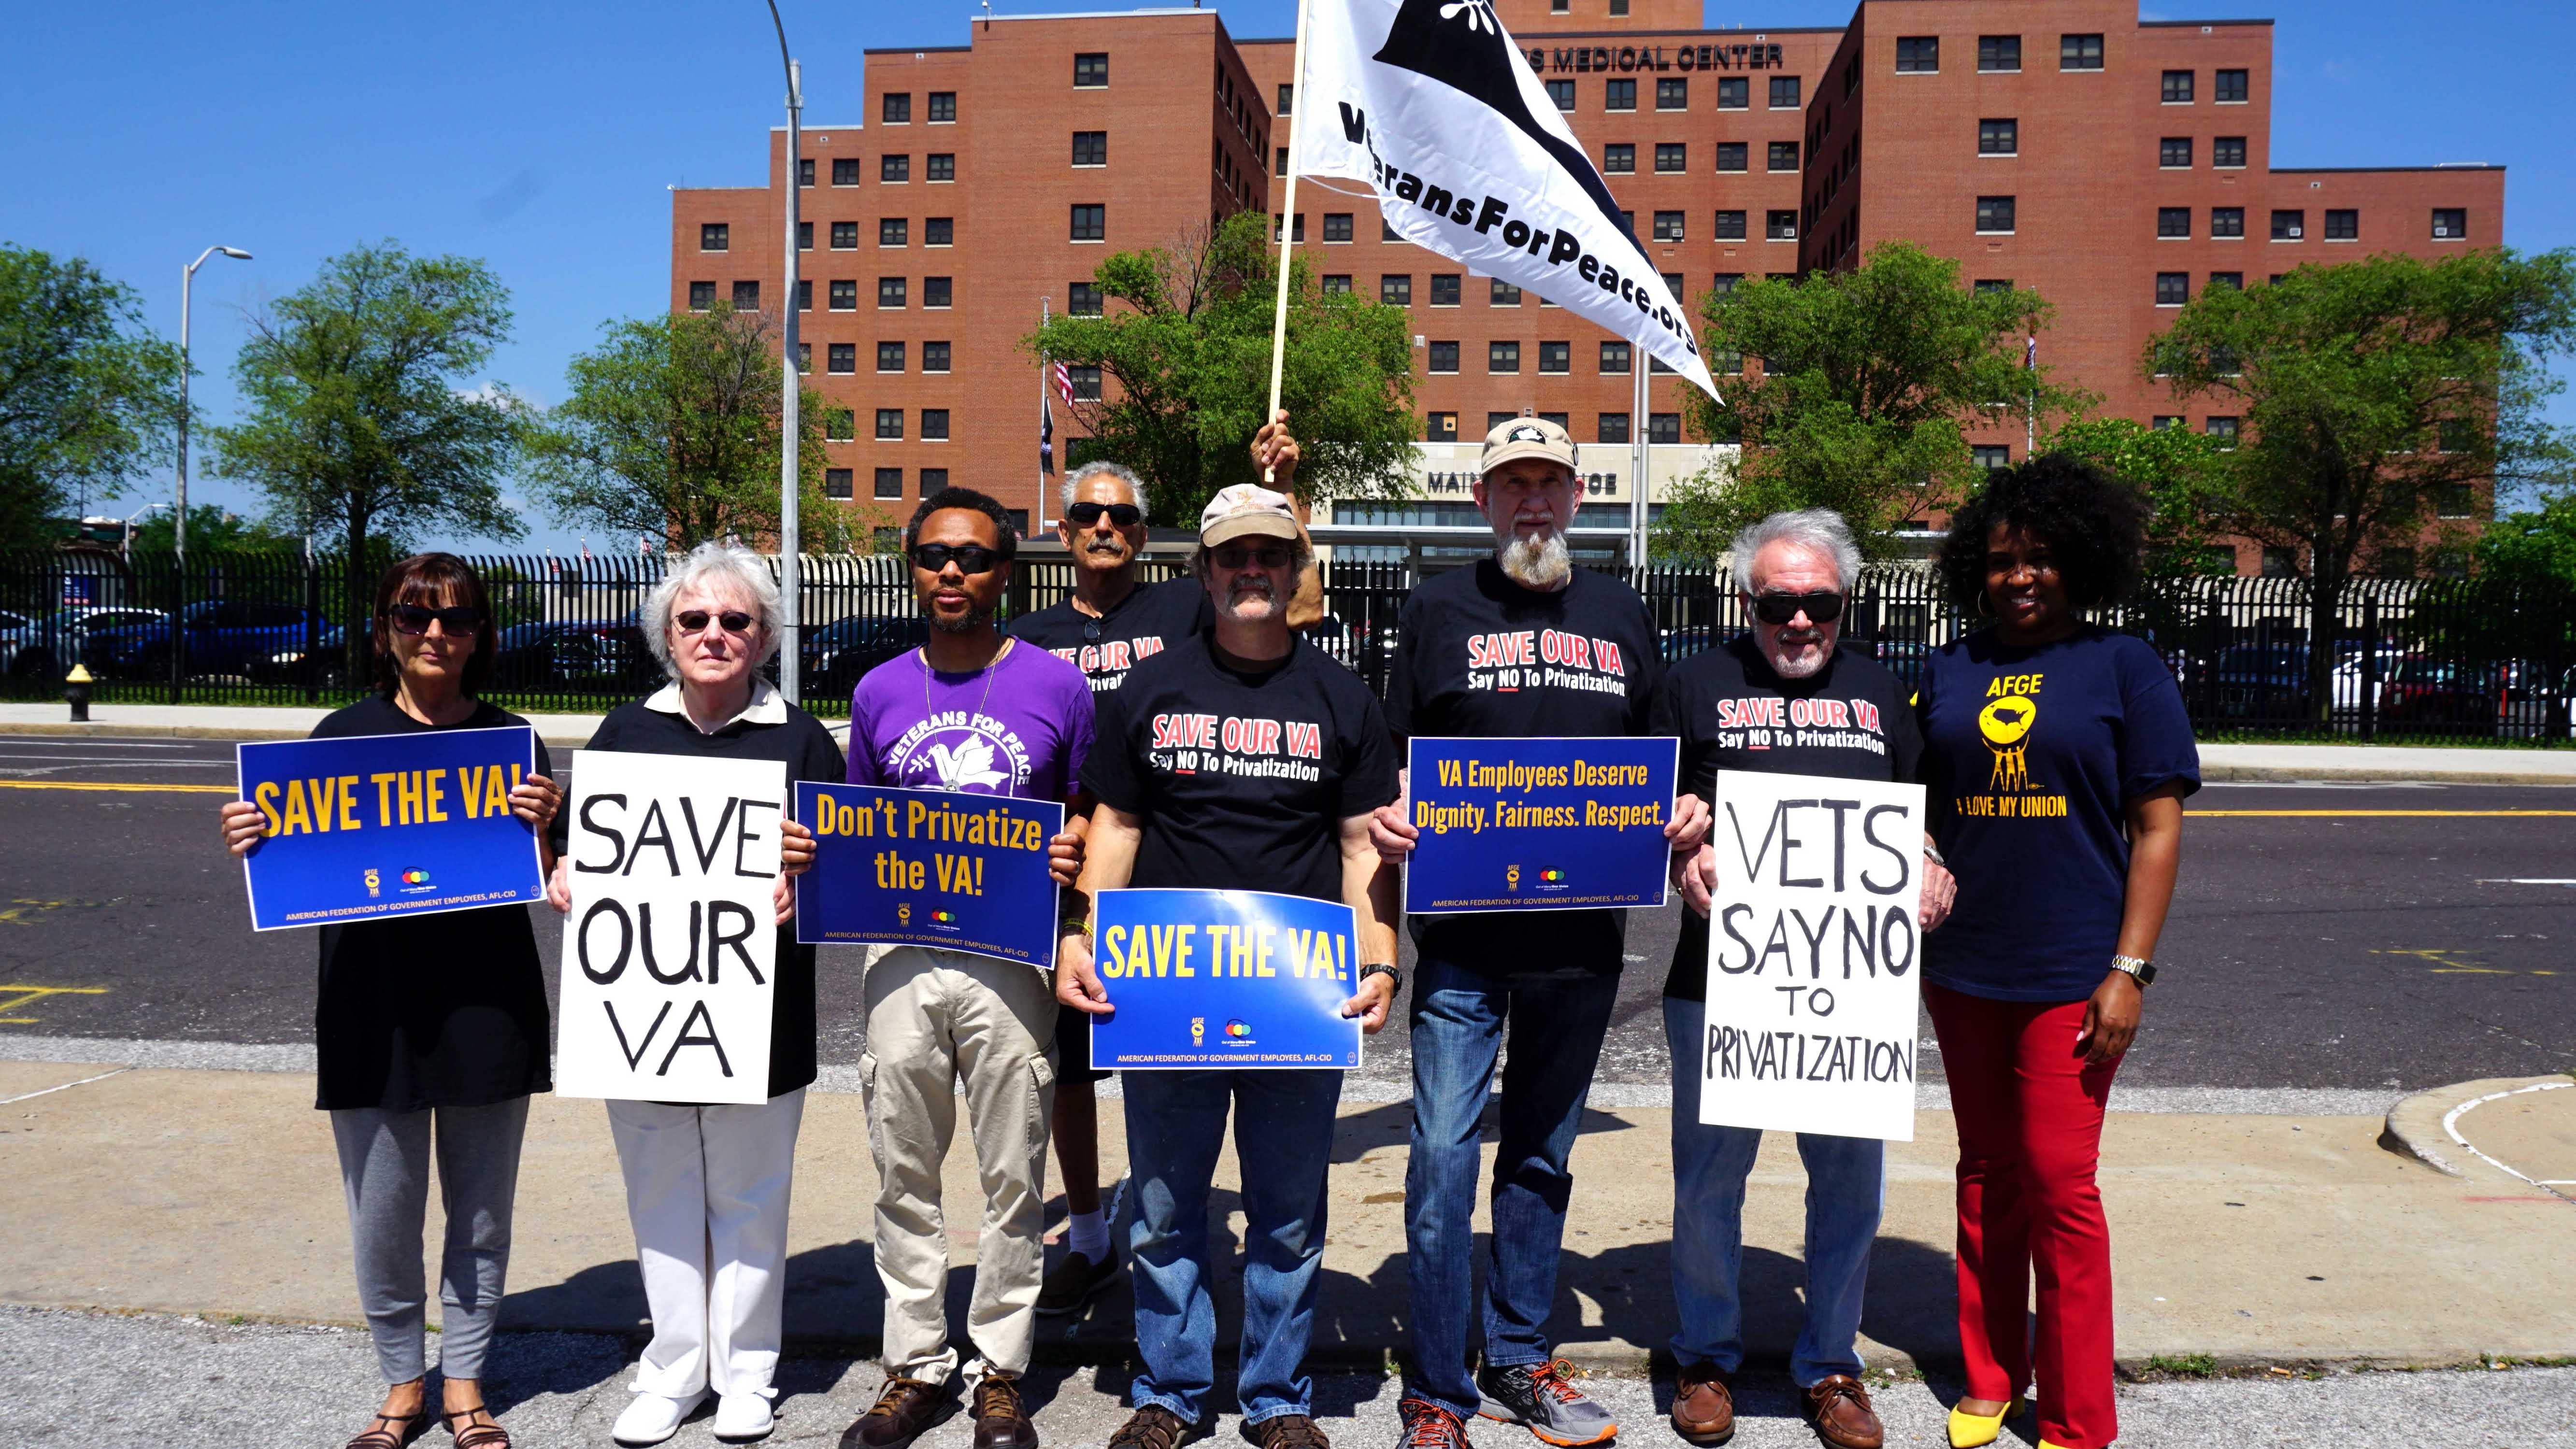 VFP members in St. Louis at the national days of action to Save Our VA